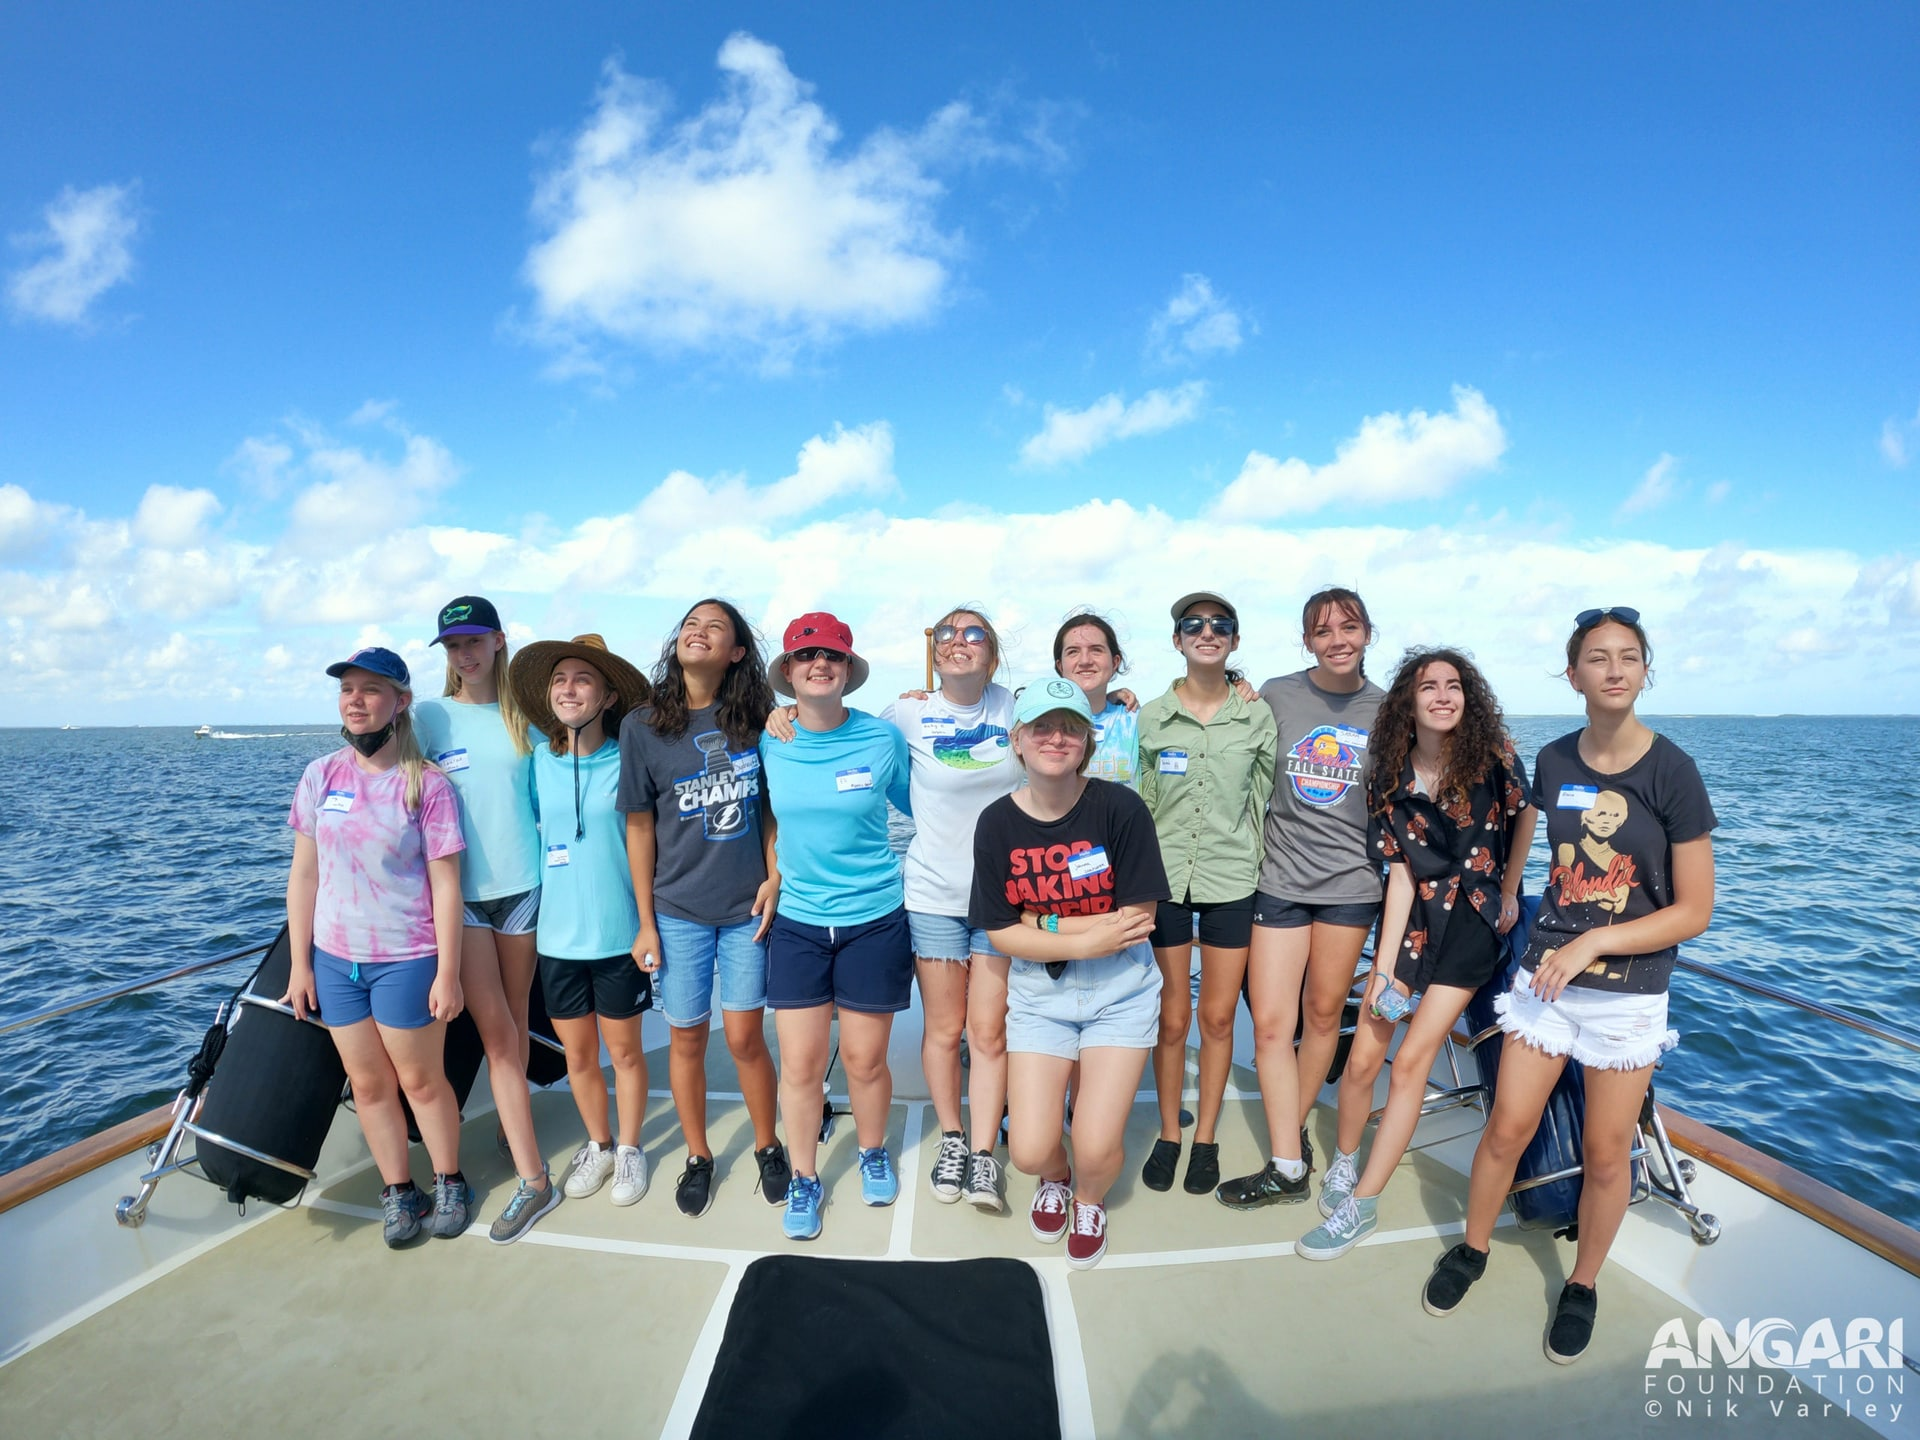 EXP 40: Young oceanographers from the July 12th OCG research cruise. PC: Nik Varley